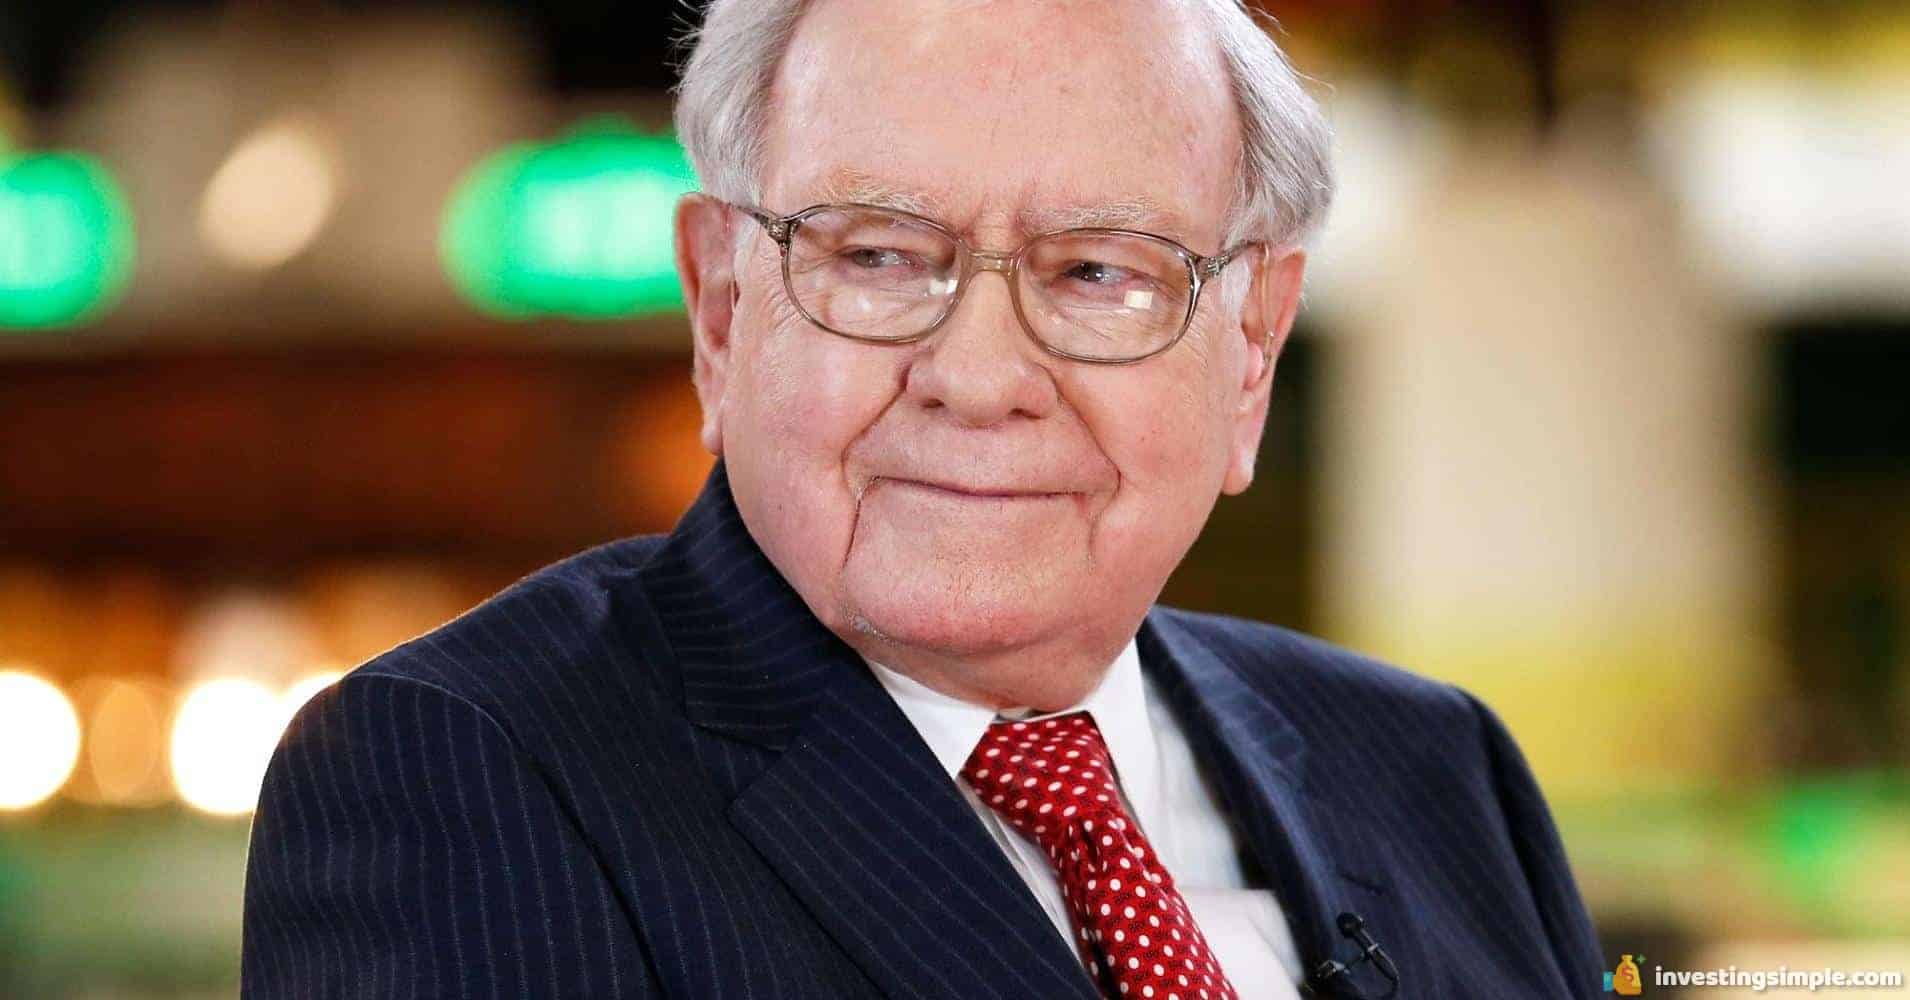 What Does Warren Buffet Look for in an Investment?